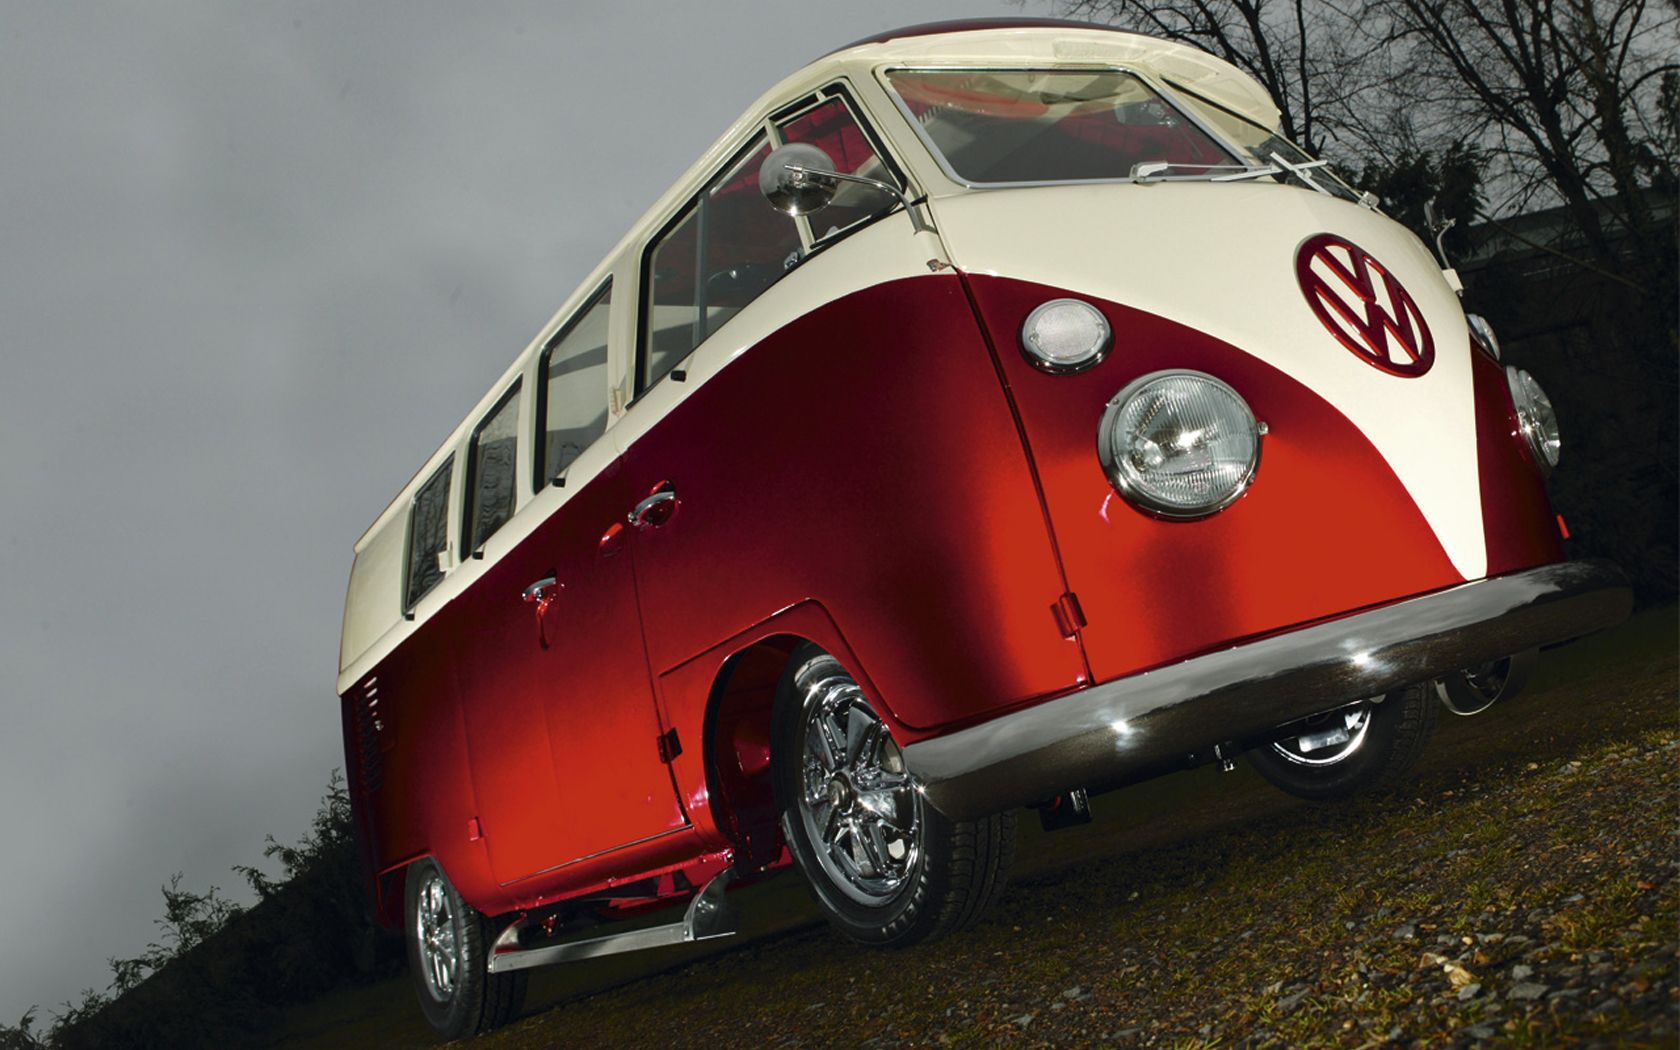 vw red volkswagen combi van bus wallpaper 1680x1050 1680x1050